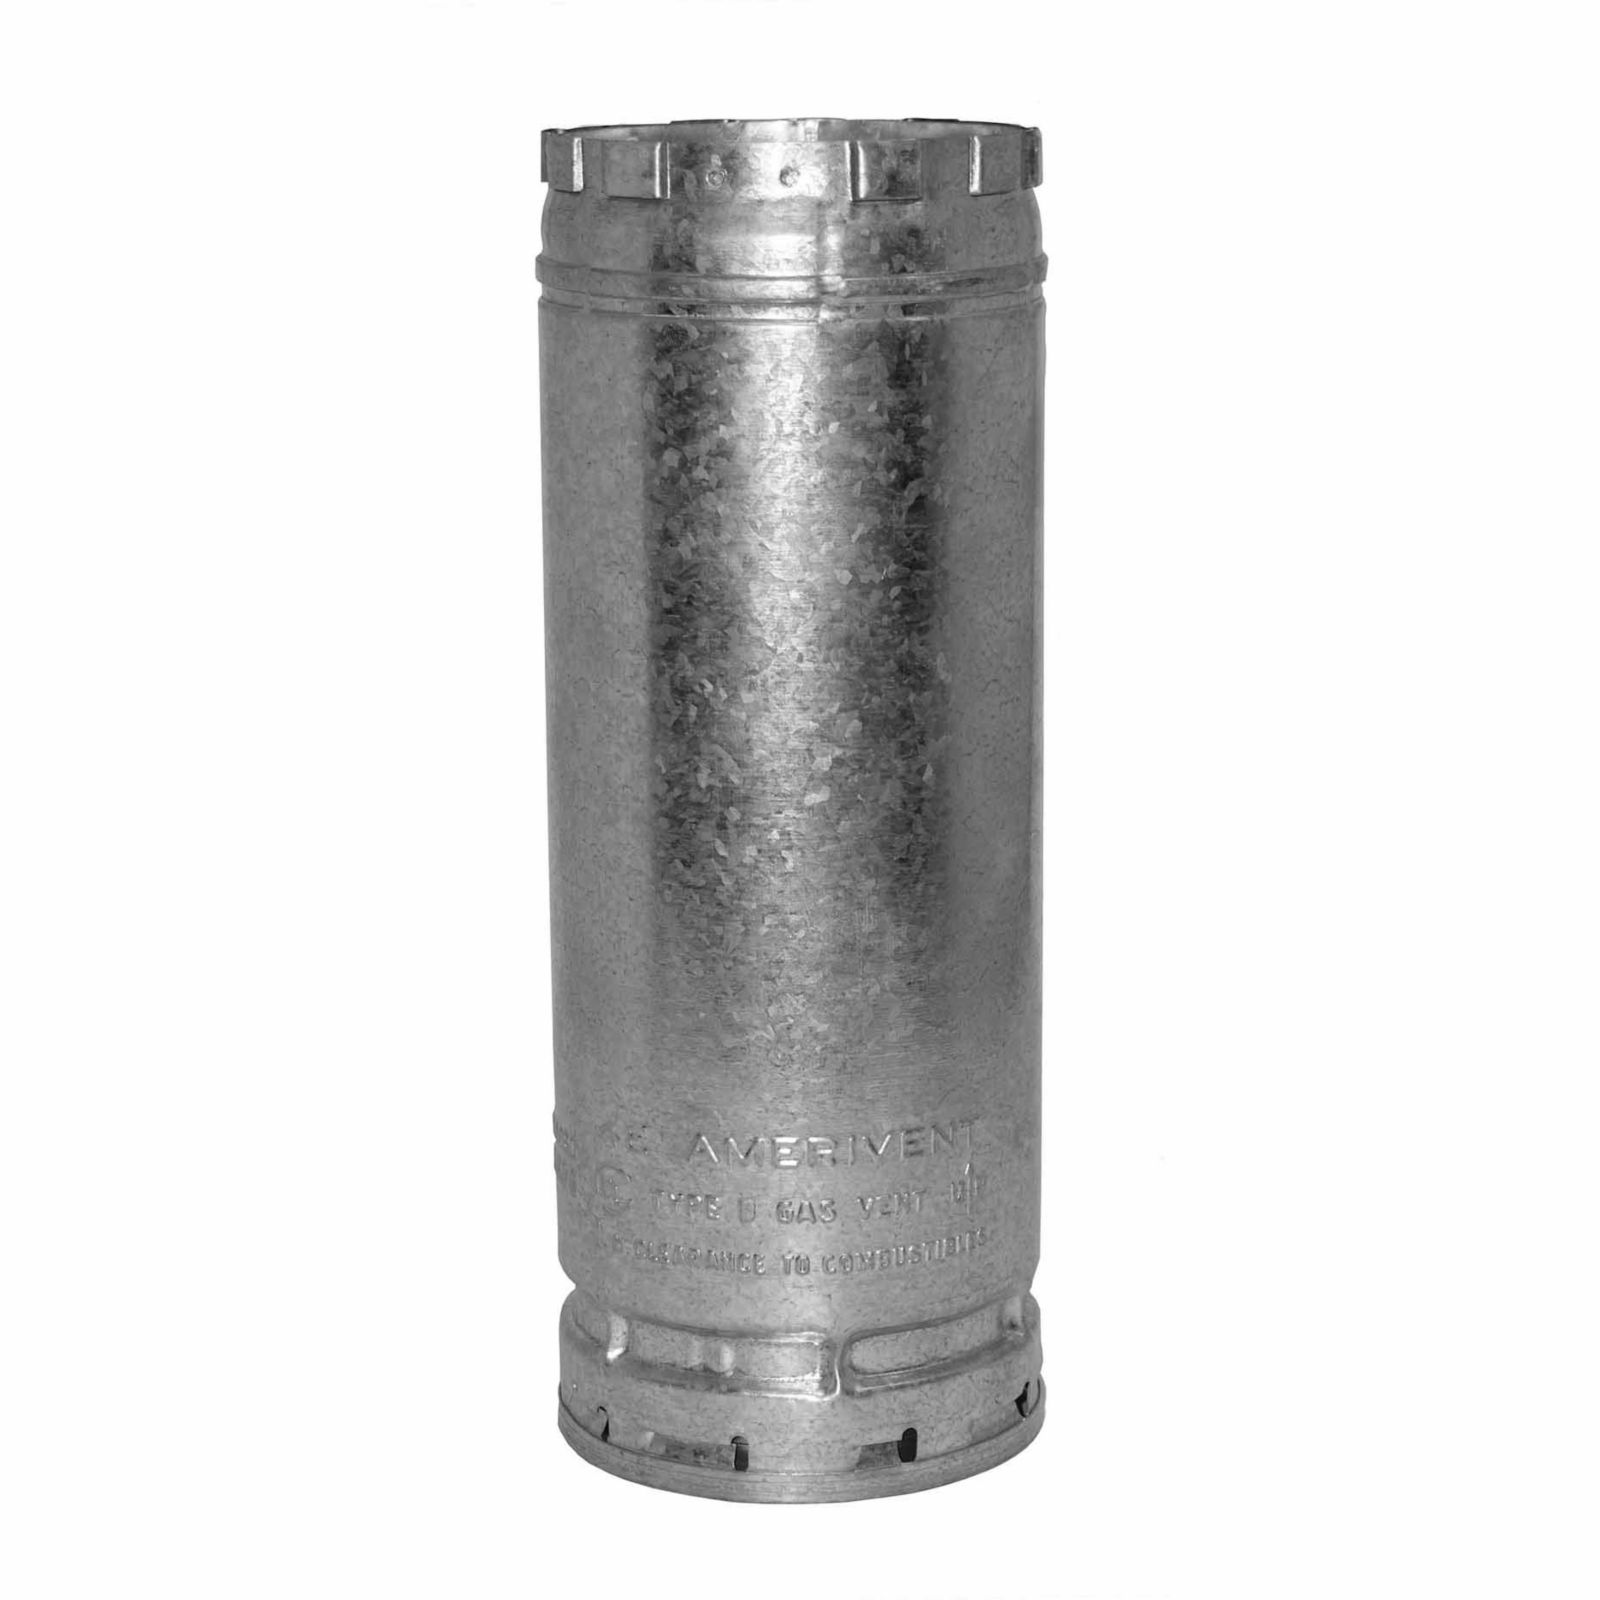 "AmeriVent 6E4 - Pipe Section Type B Gas Vent, 6"" Round X 48"" Length"